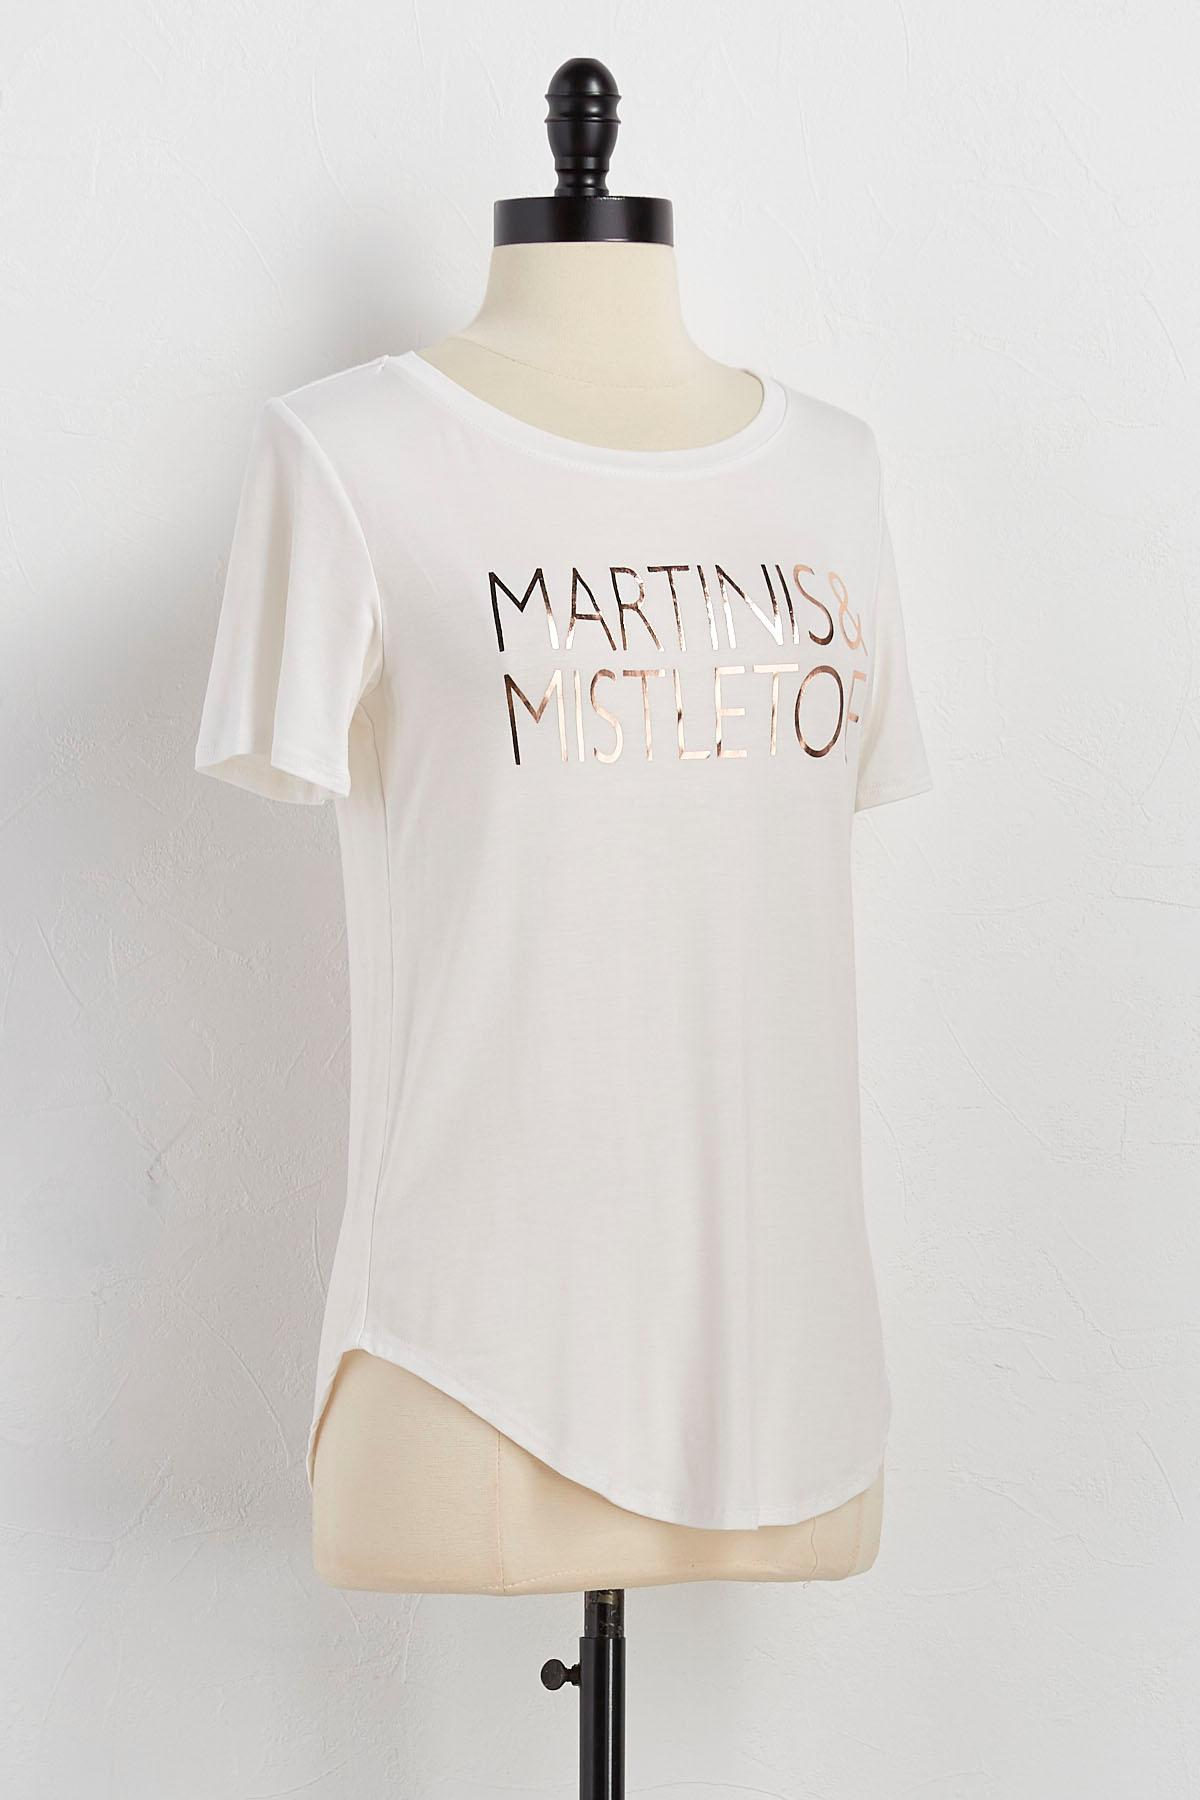 Martinis And Mistletoe Graphic Tee